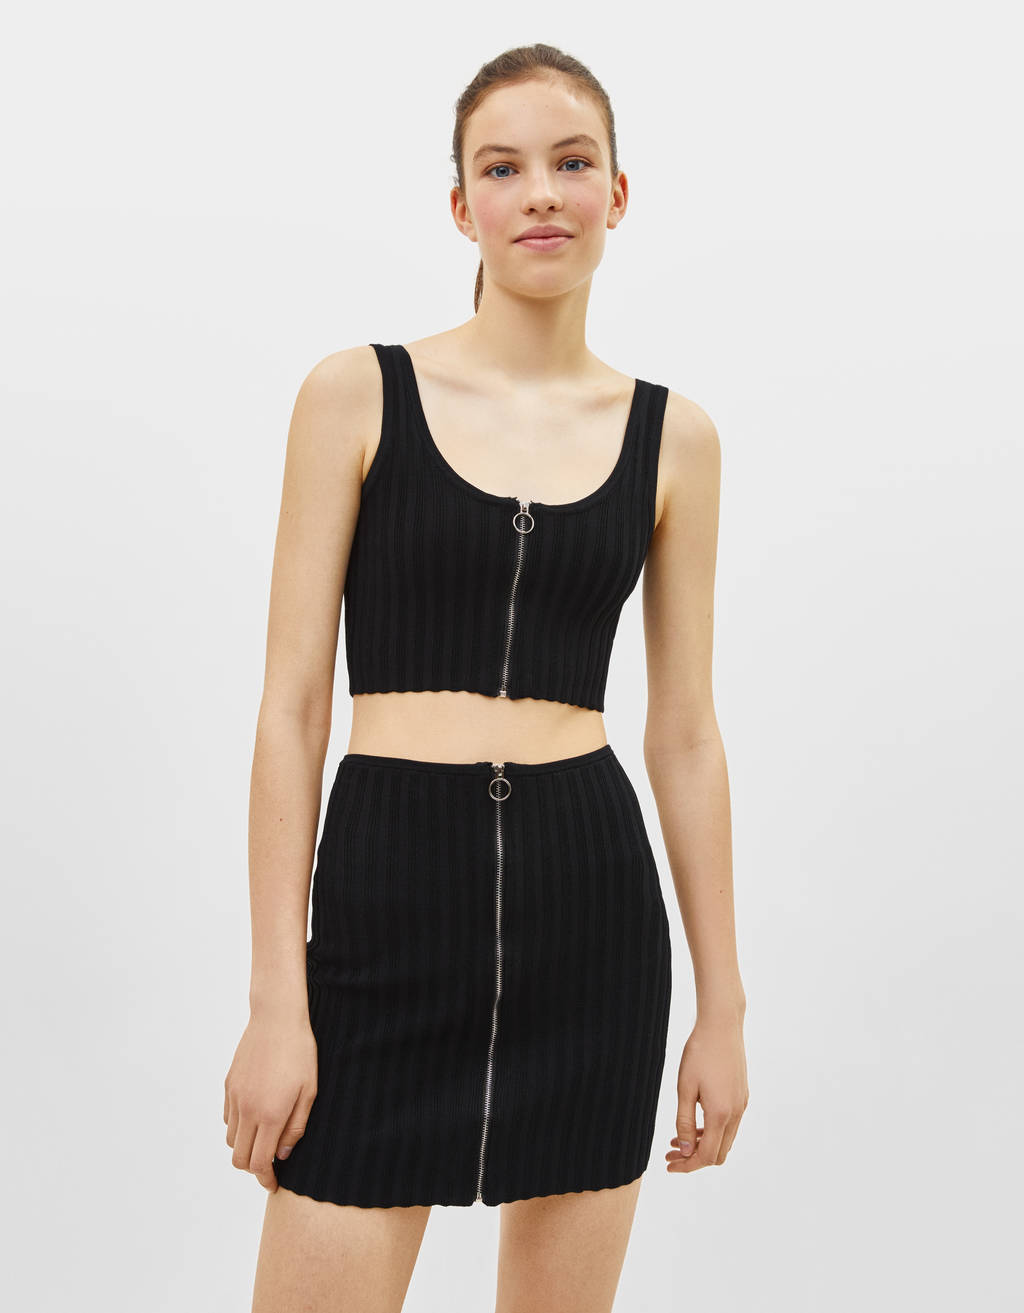 973156ed1 Women's Skirts - Spring Summer 2019 | Bershka